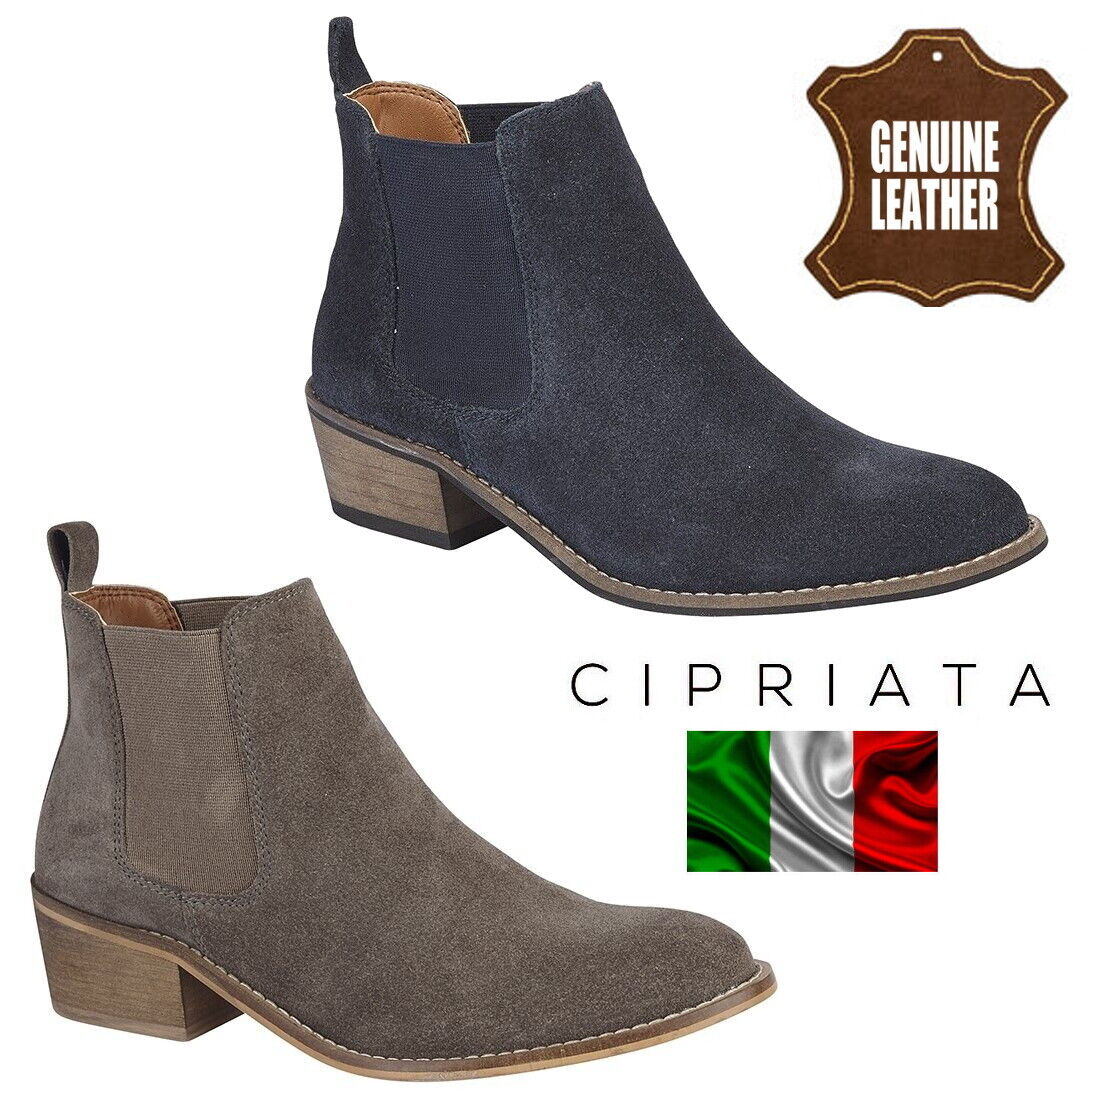 dffe6e4208d Details about Cipriata 'Sabrina' Ladies Suede Twin Gusset Chelsea Boots  Womens Ankle Boot